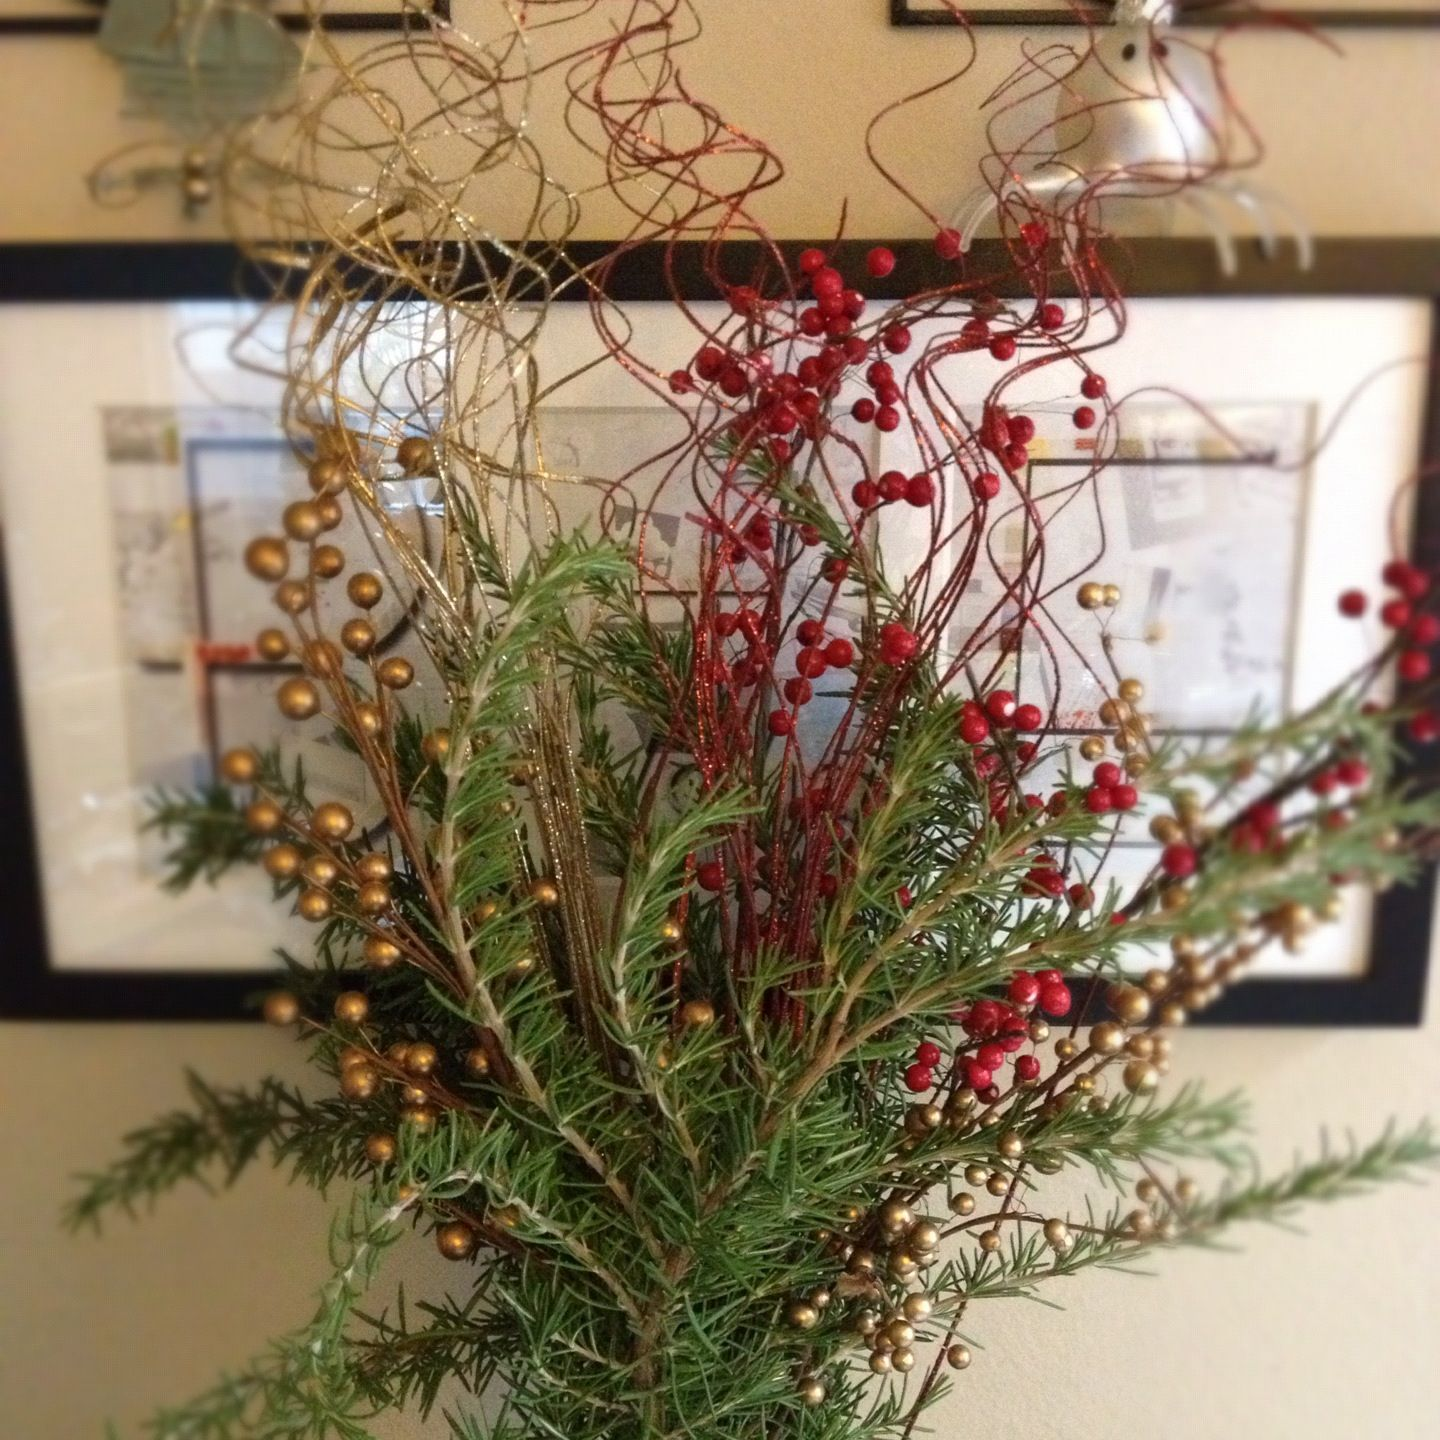 Rosemary holly berries glitter twists in a glass vase with rosemary holly berries glitter twists in a glass vase with garland for vase filler floridaeventfo Images